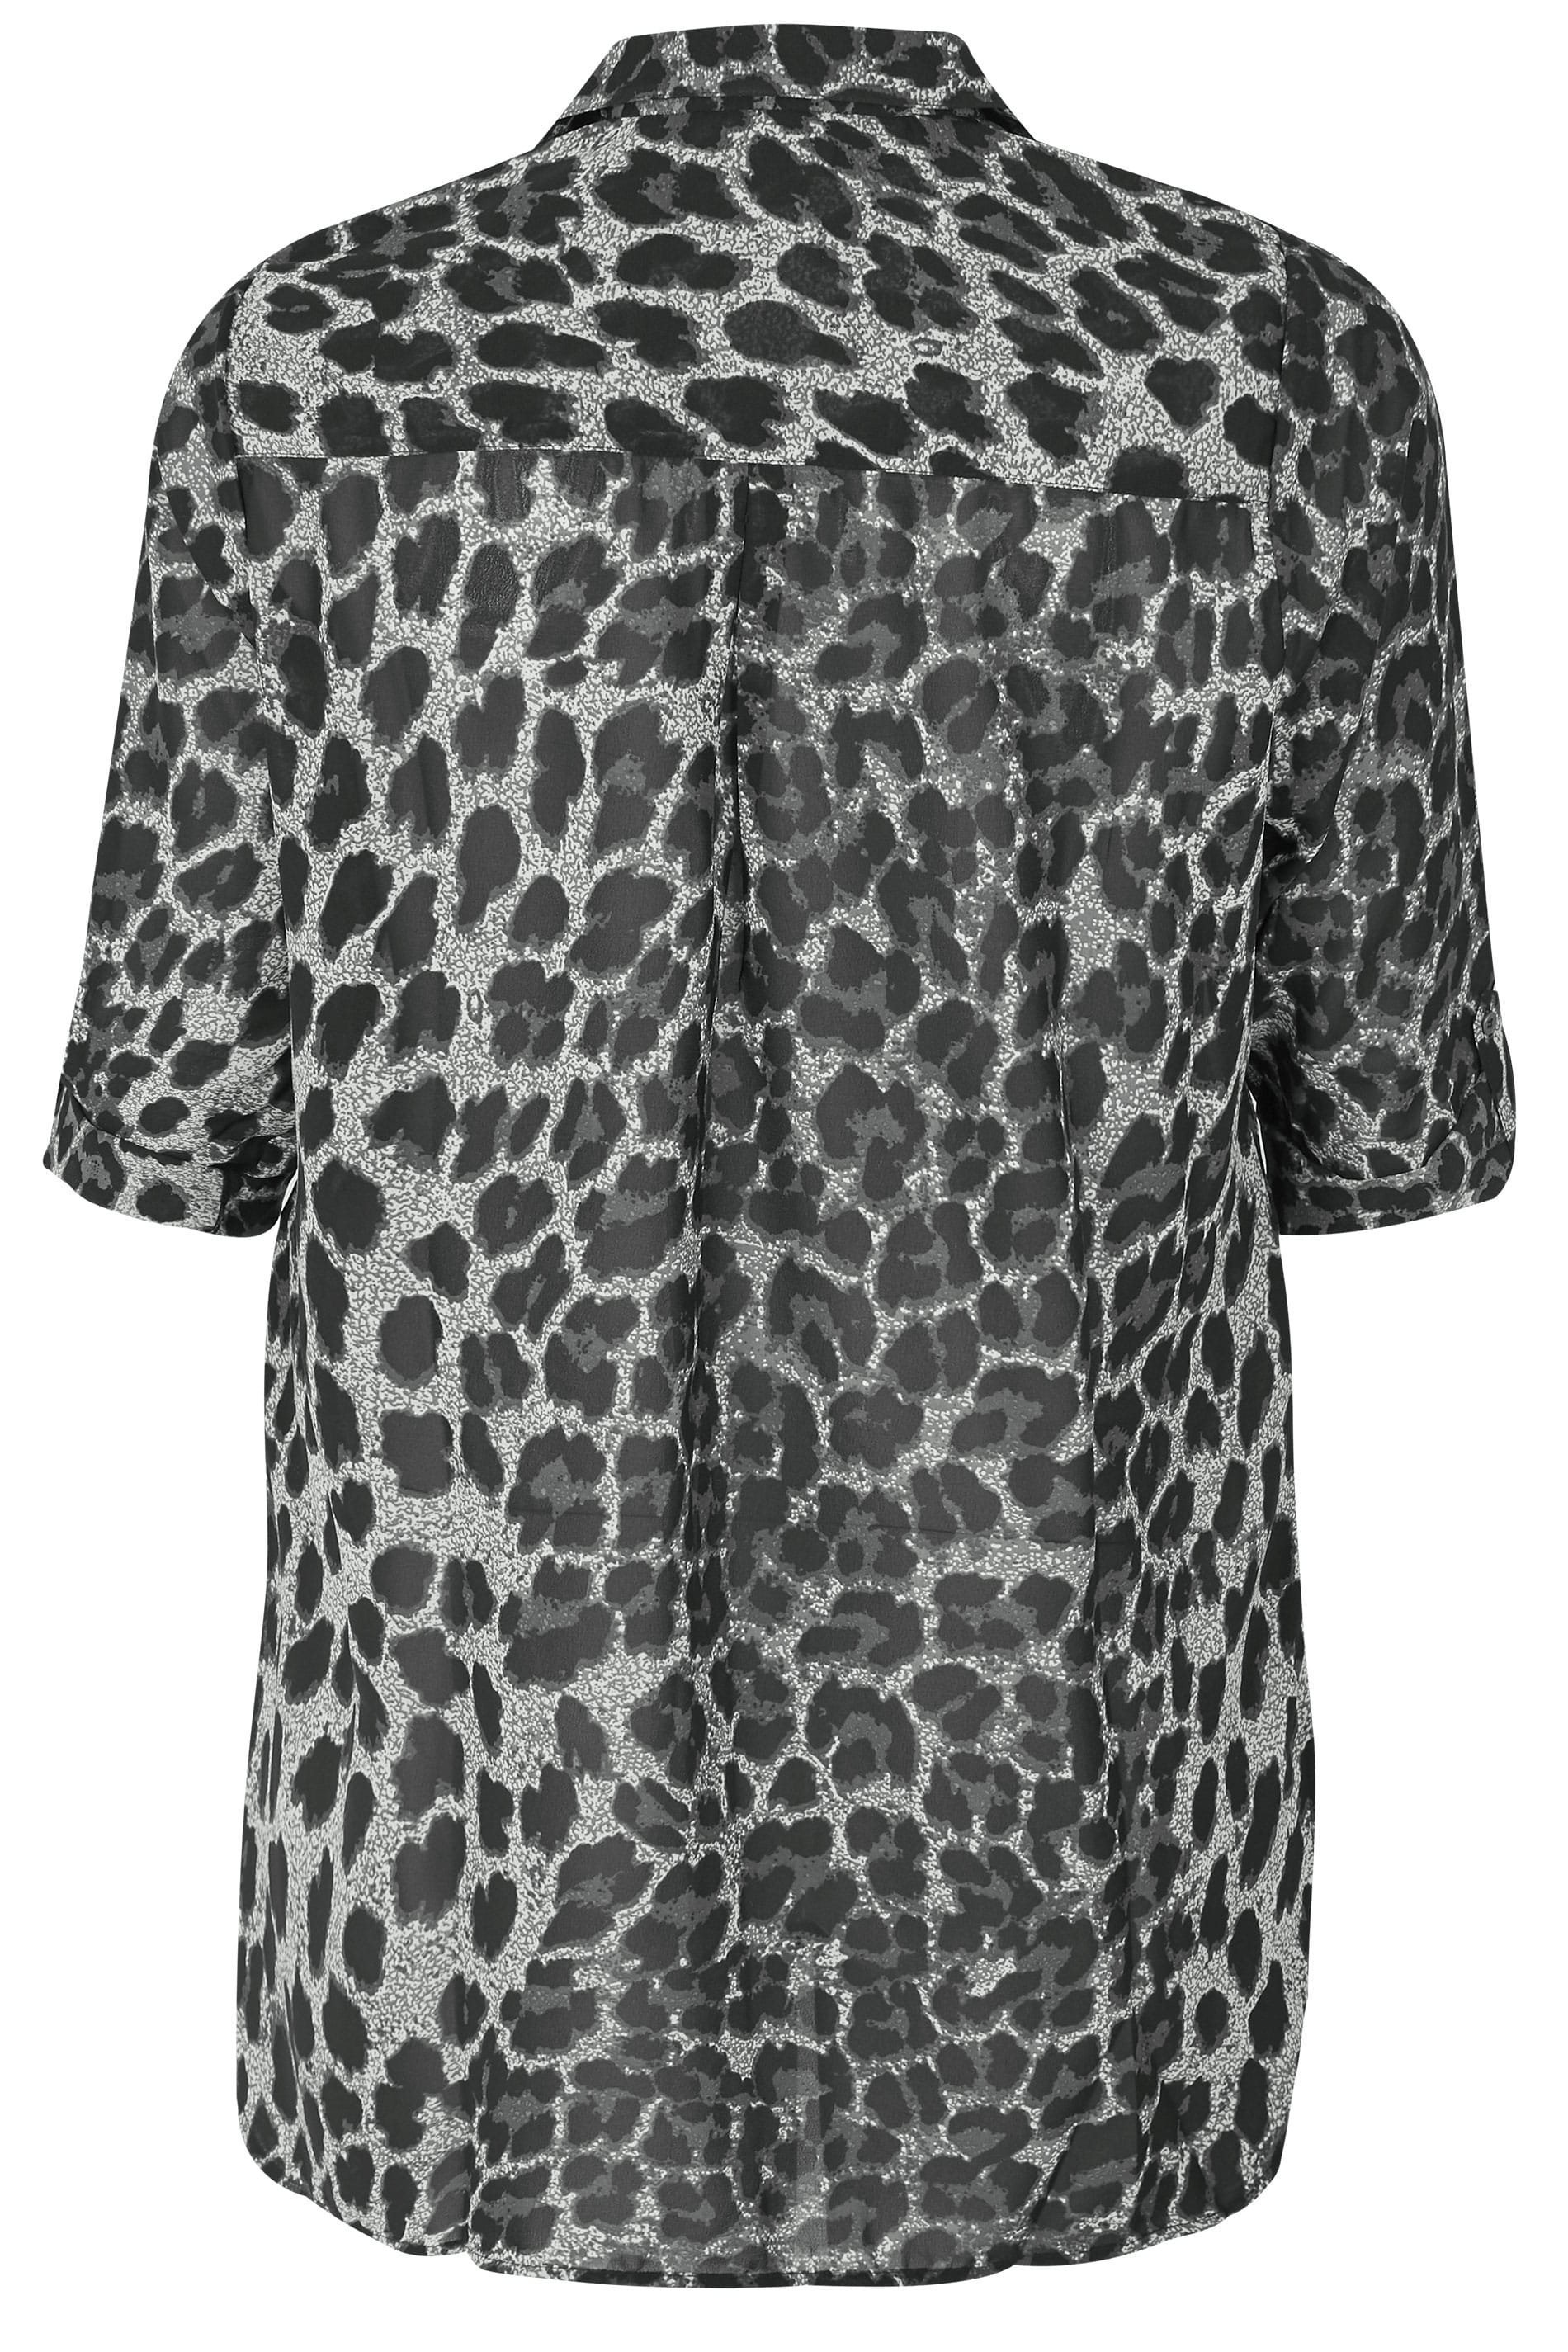 a84c1fb0613 Hover over the images above to enlarge. Black Animal Print Chiffon Shirt. Black  Animal Print Chiffon Shirt